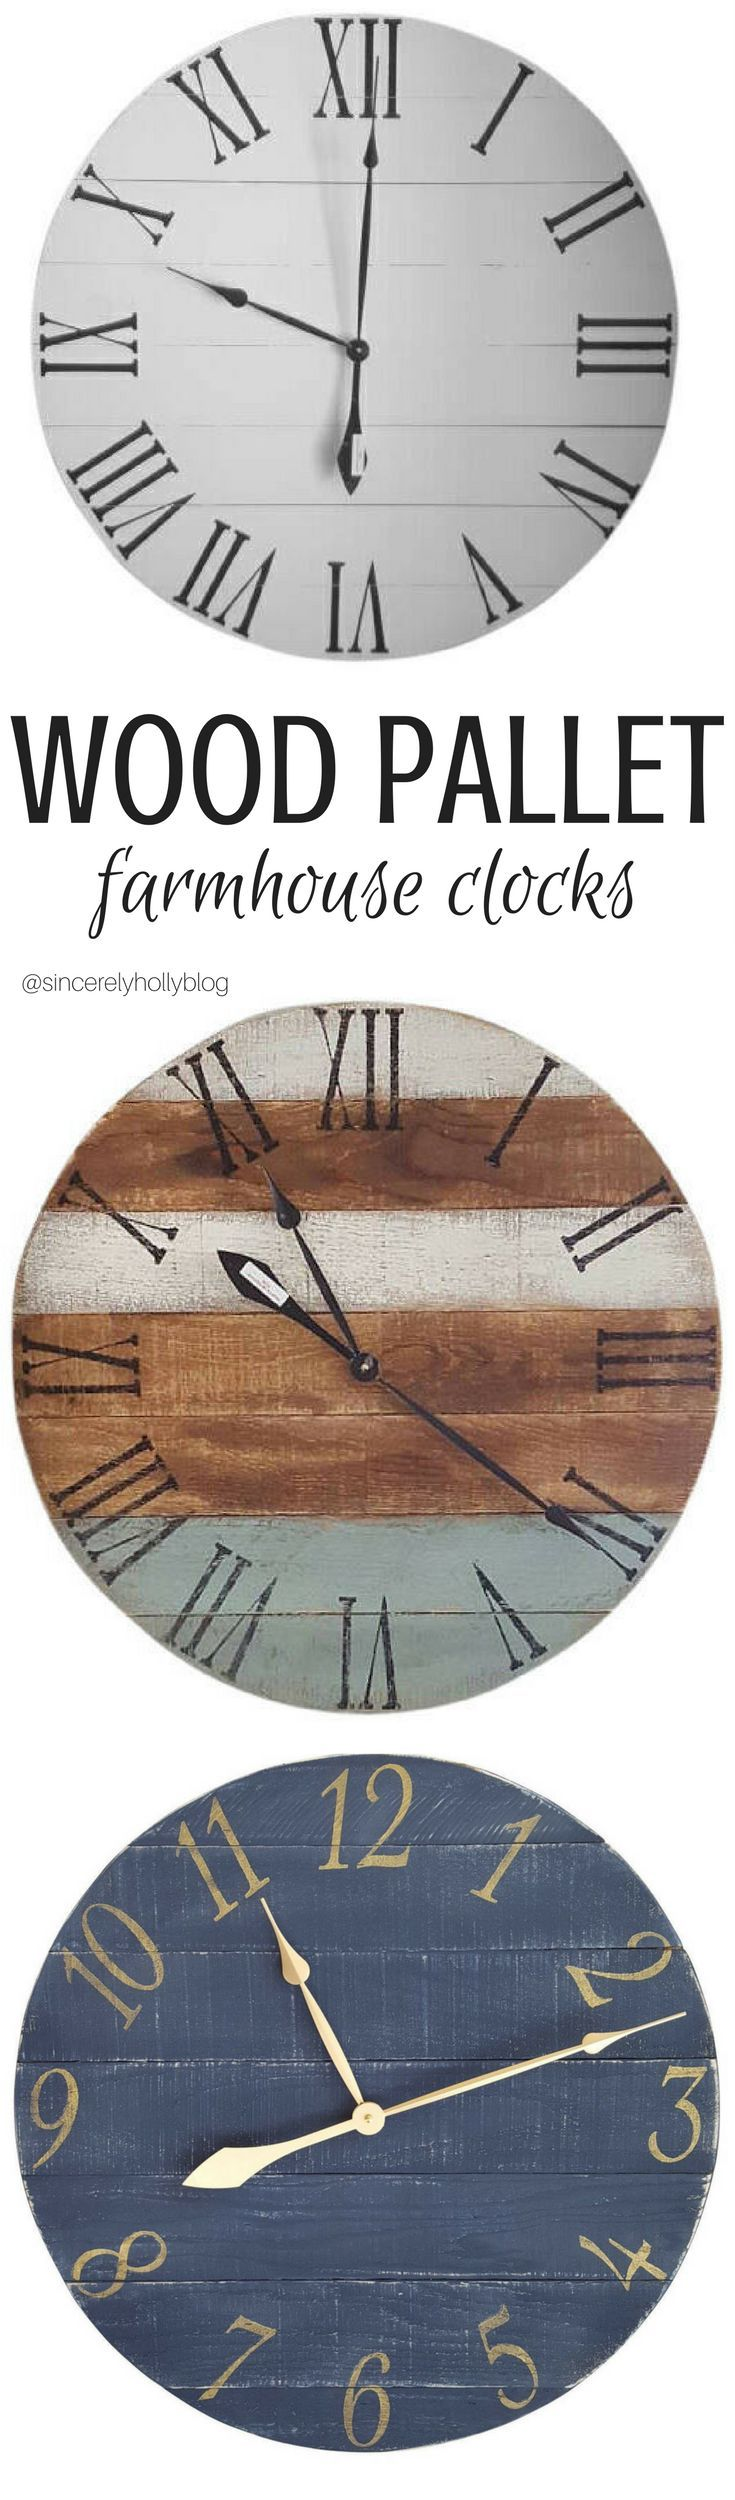 Am americana country wall clocks - Best 25 Kitchen Clocks Ideas On Pinterest Big Clocks Wall Clocks And Farm Kitchen Decor